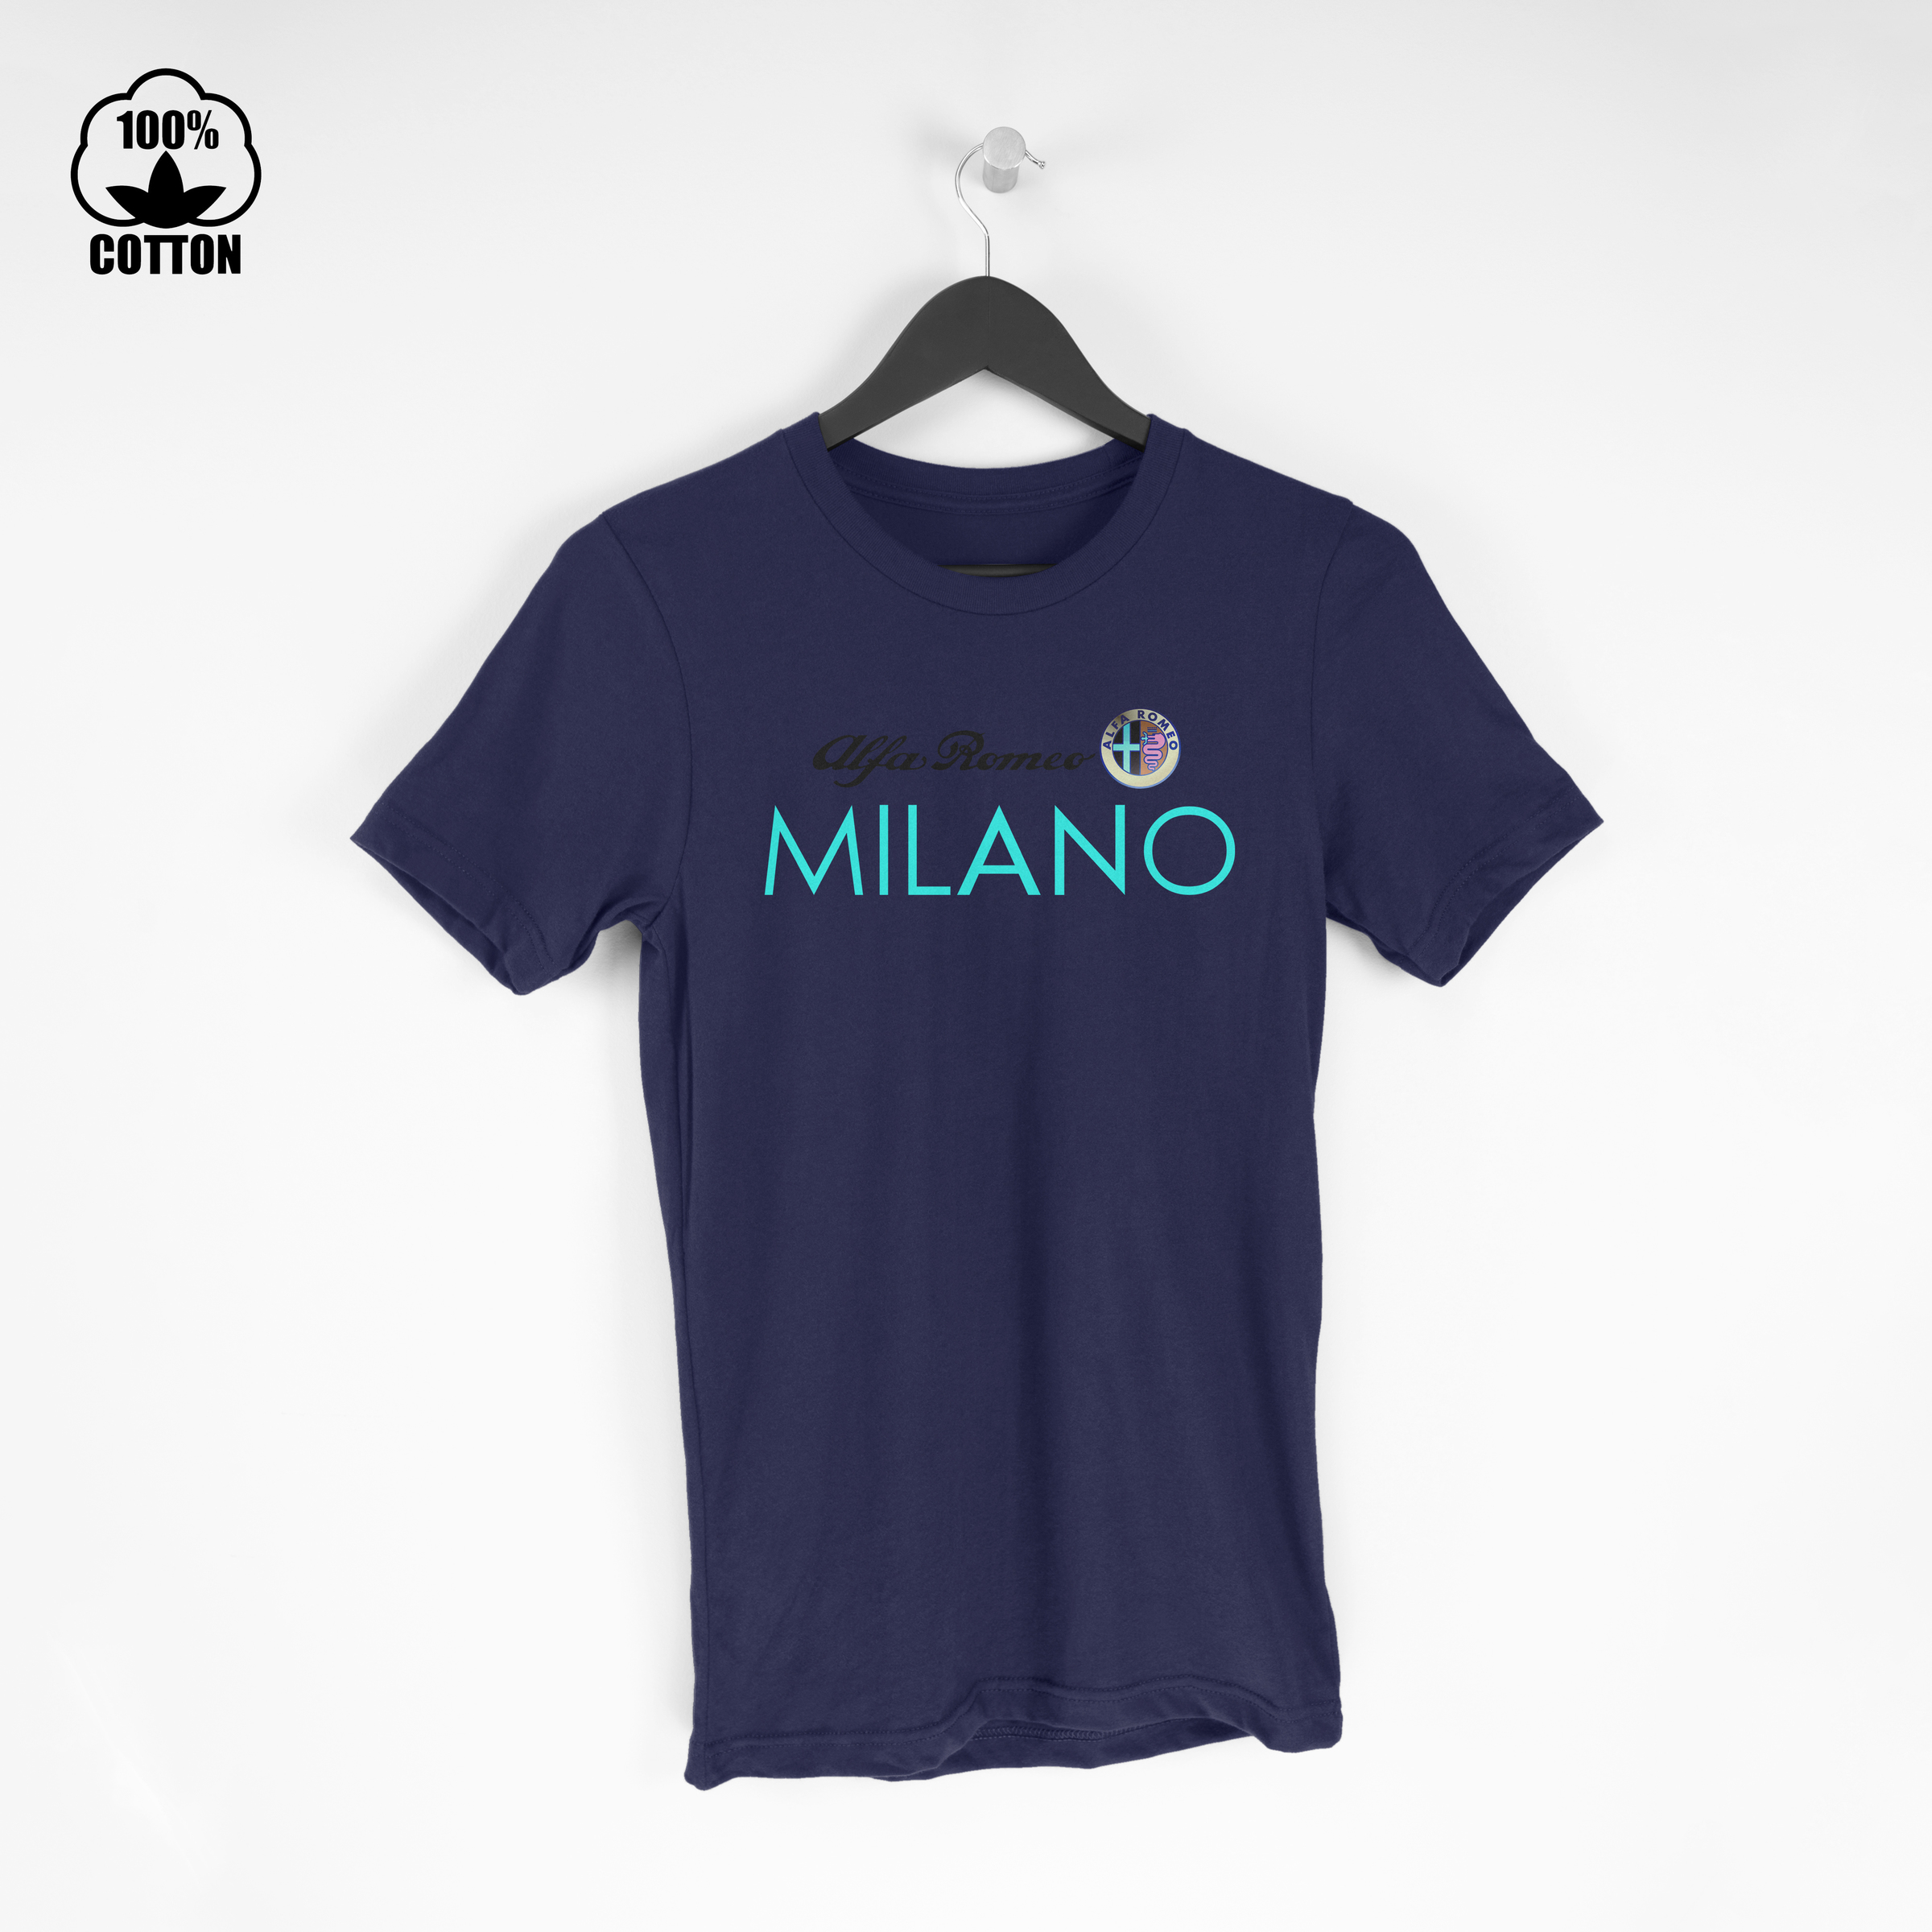 Alfa Romeo Shirt Milano Logo Tee Mens Clothing New Cotton Tshirt Size S-XXL USA MidnightBlue.jpg